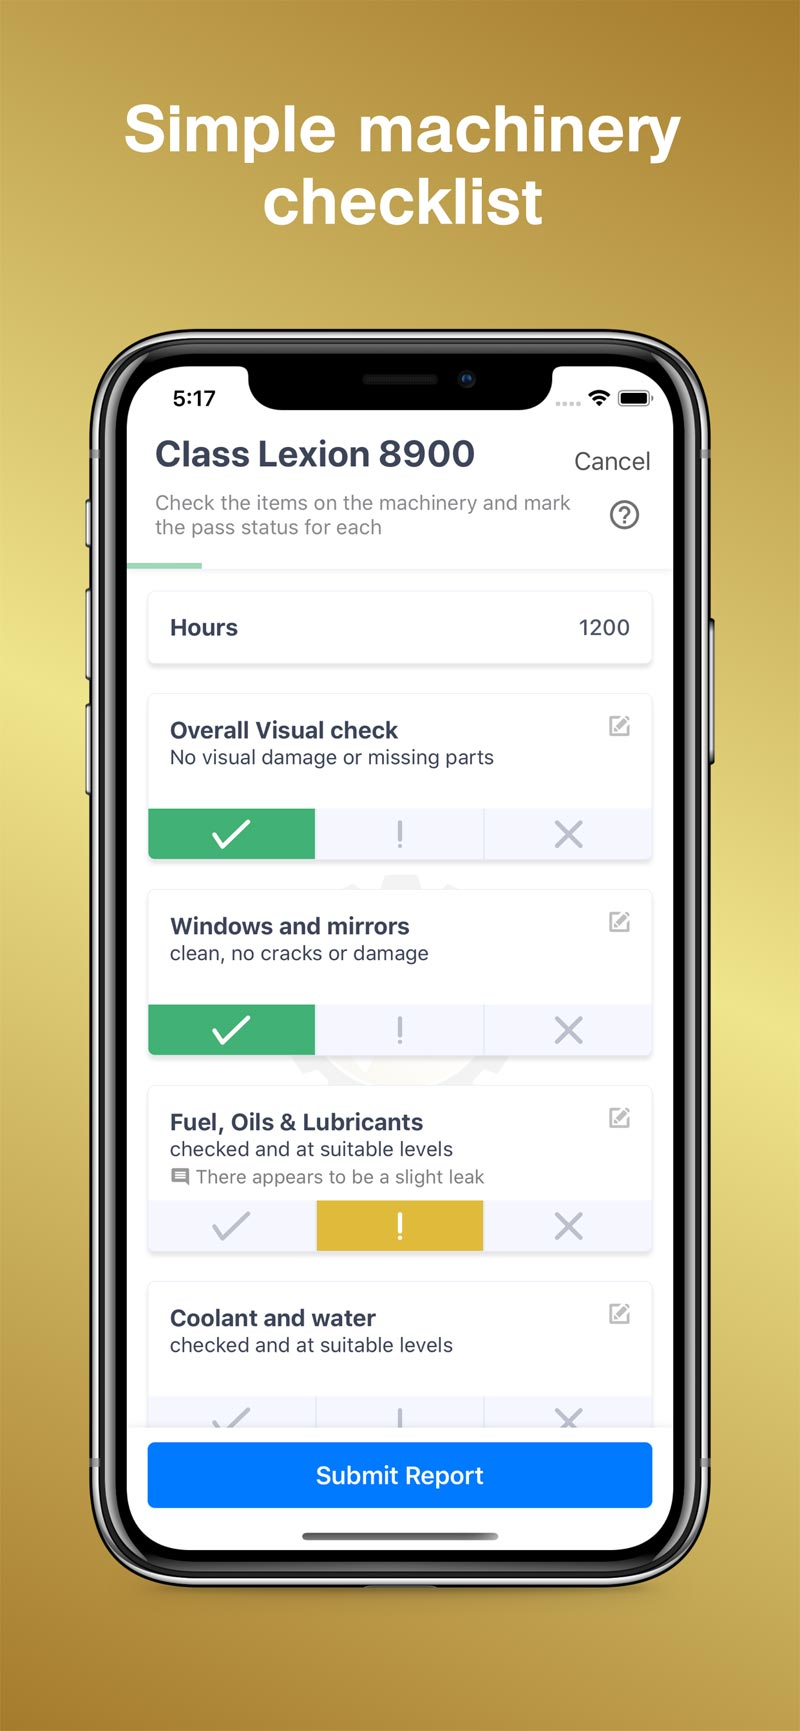 Simple Machinery Checklist - MeritAgCheck App